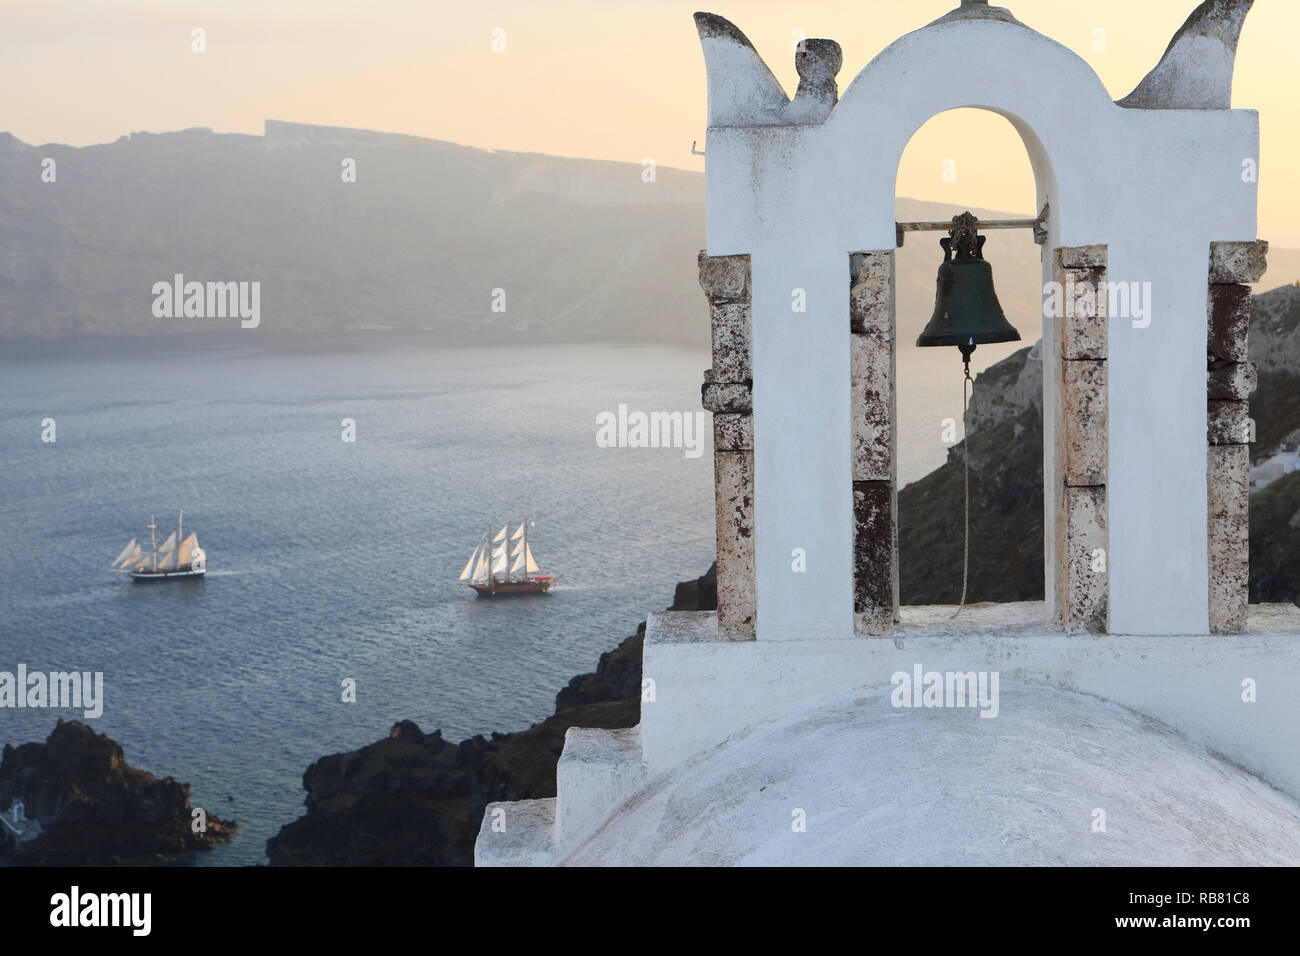 City of Oia on Santorini Island. View onto church with bell built on the volcano rim (Caldera). Sailing ships on the Mediterranean Sea below - Stock Image